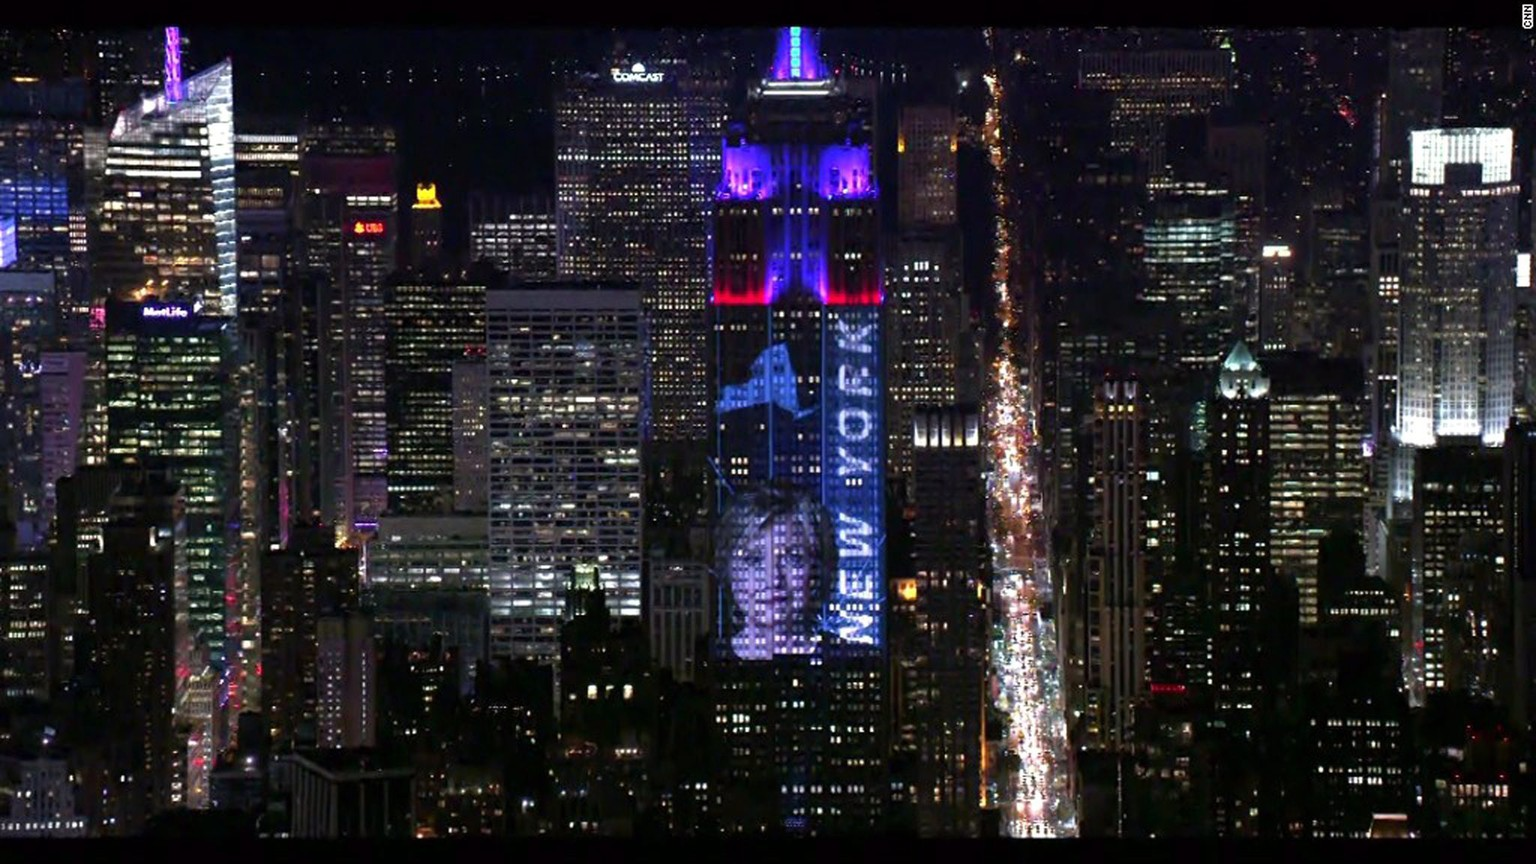 epa05623373 A handout picture made available by the Empire State Realty Trust shows a view of the Empire State Building lit with real-time election results and campaign photos during the US Election Day in New York, New York, USA, 08 November 2016. Americans vote on Election Day to choose the 45th President of the United States of America to serve from 2017 through 2020.  EPA/CNN  / HANDOUT via EMPIRE STATE REALTY TRUST  HANDOUT EDITORIAL USE ONLY/NO SALES